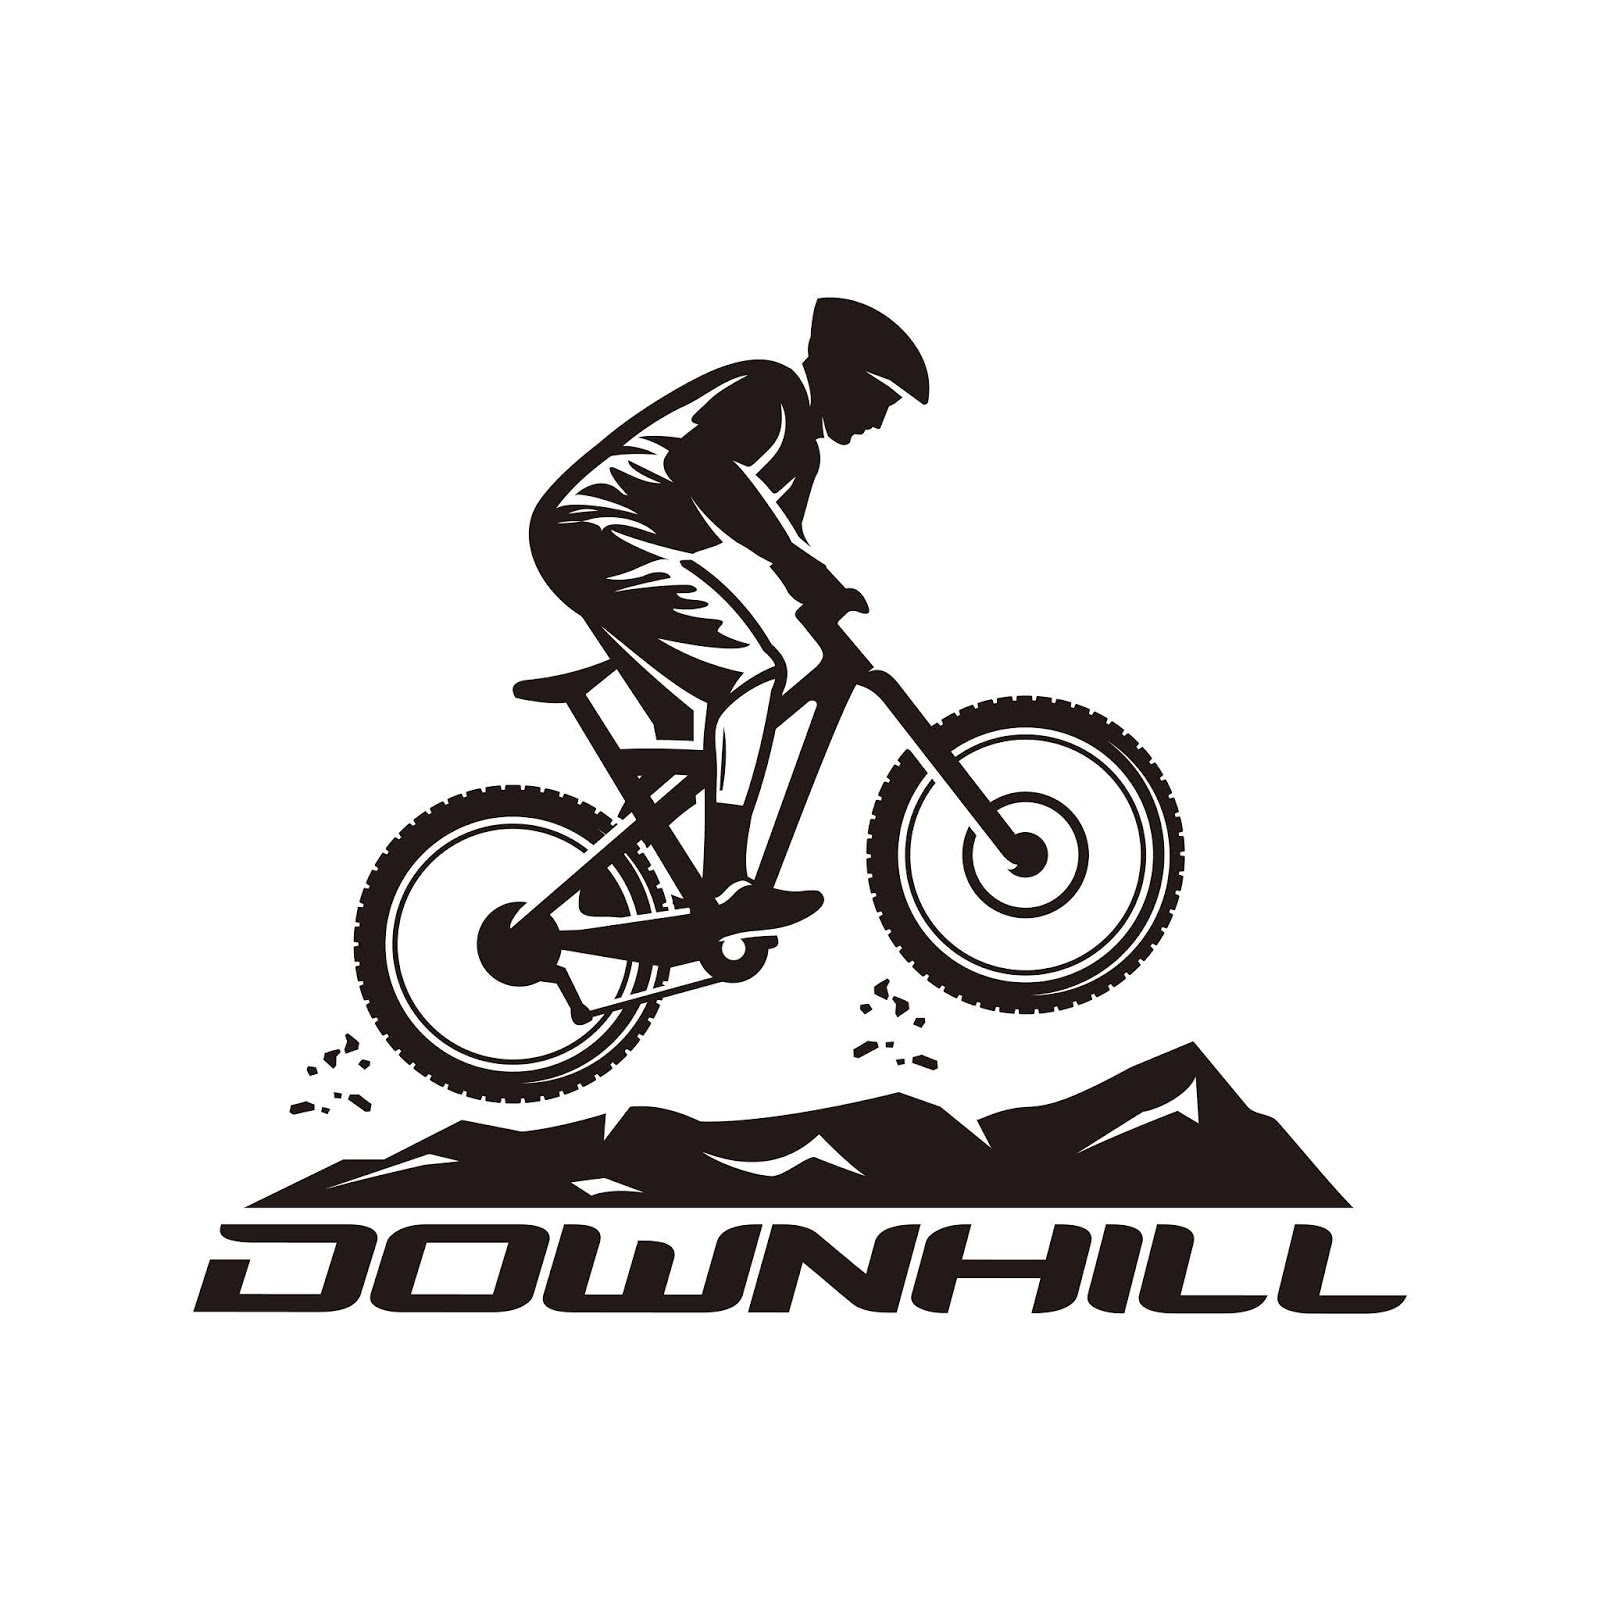 Downhill Vector Logo Template Free Download Vector CDR, AI, EPS and PNG Formats